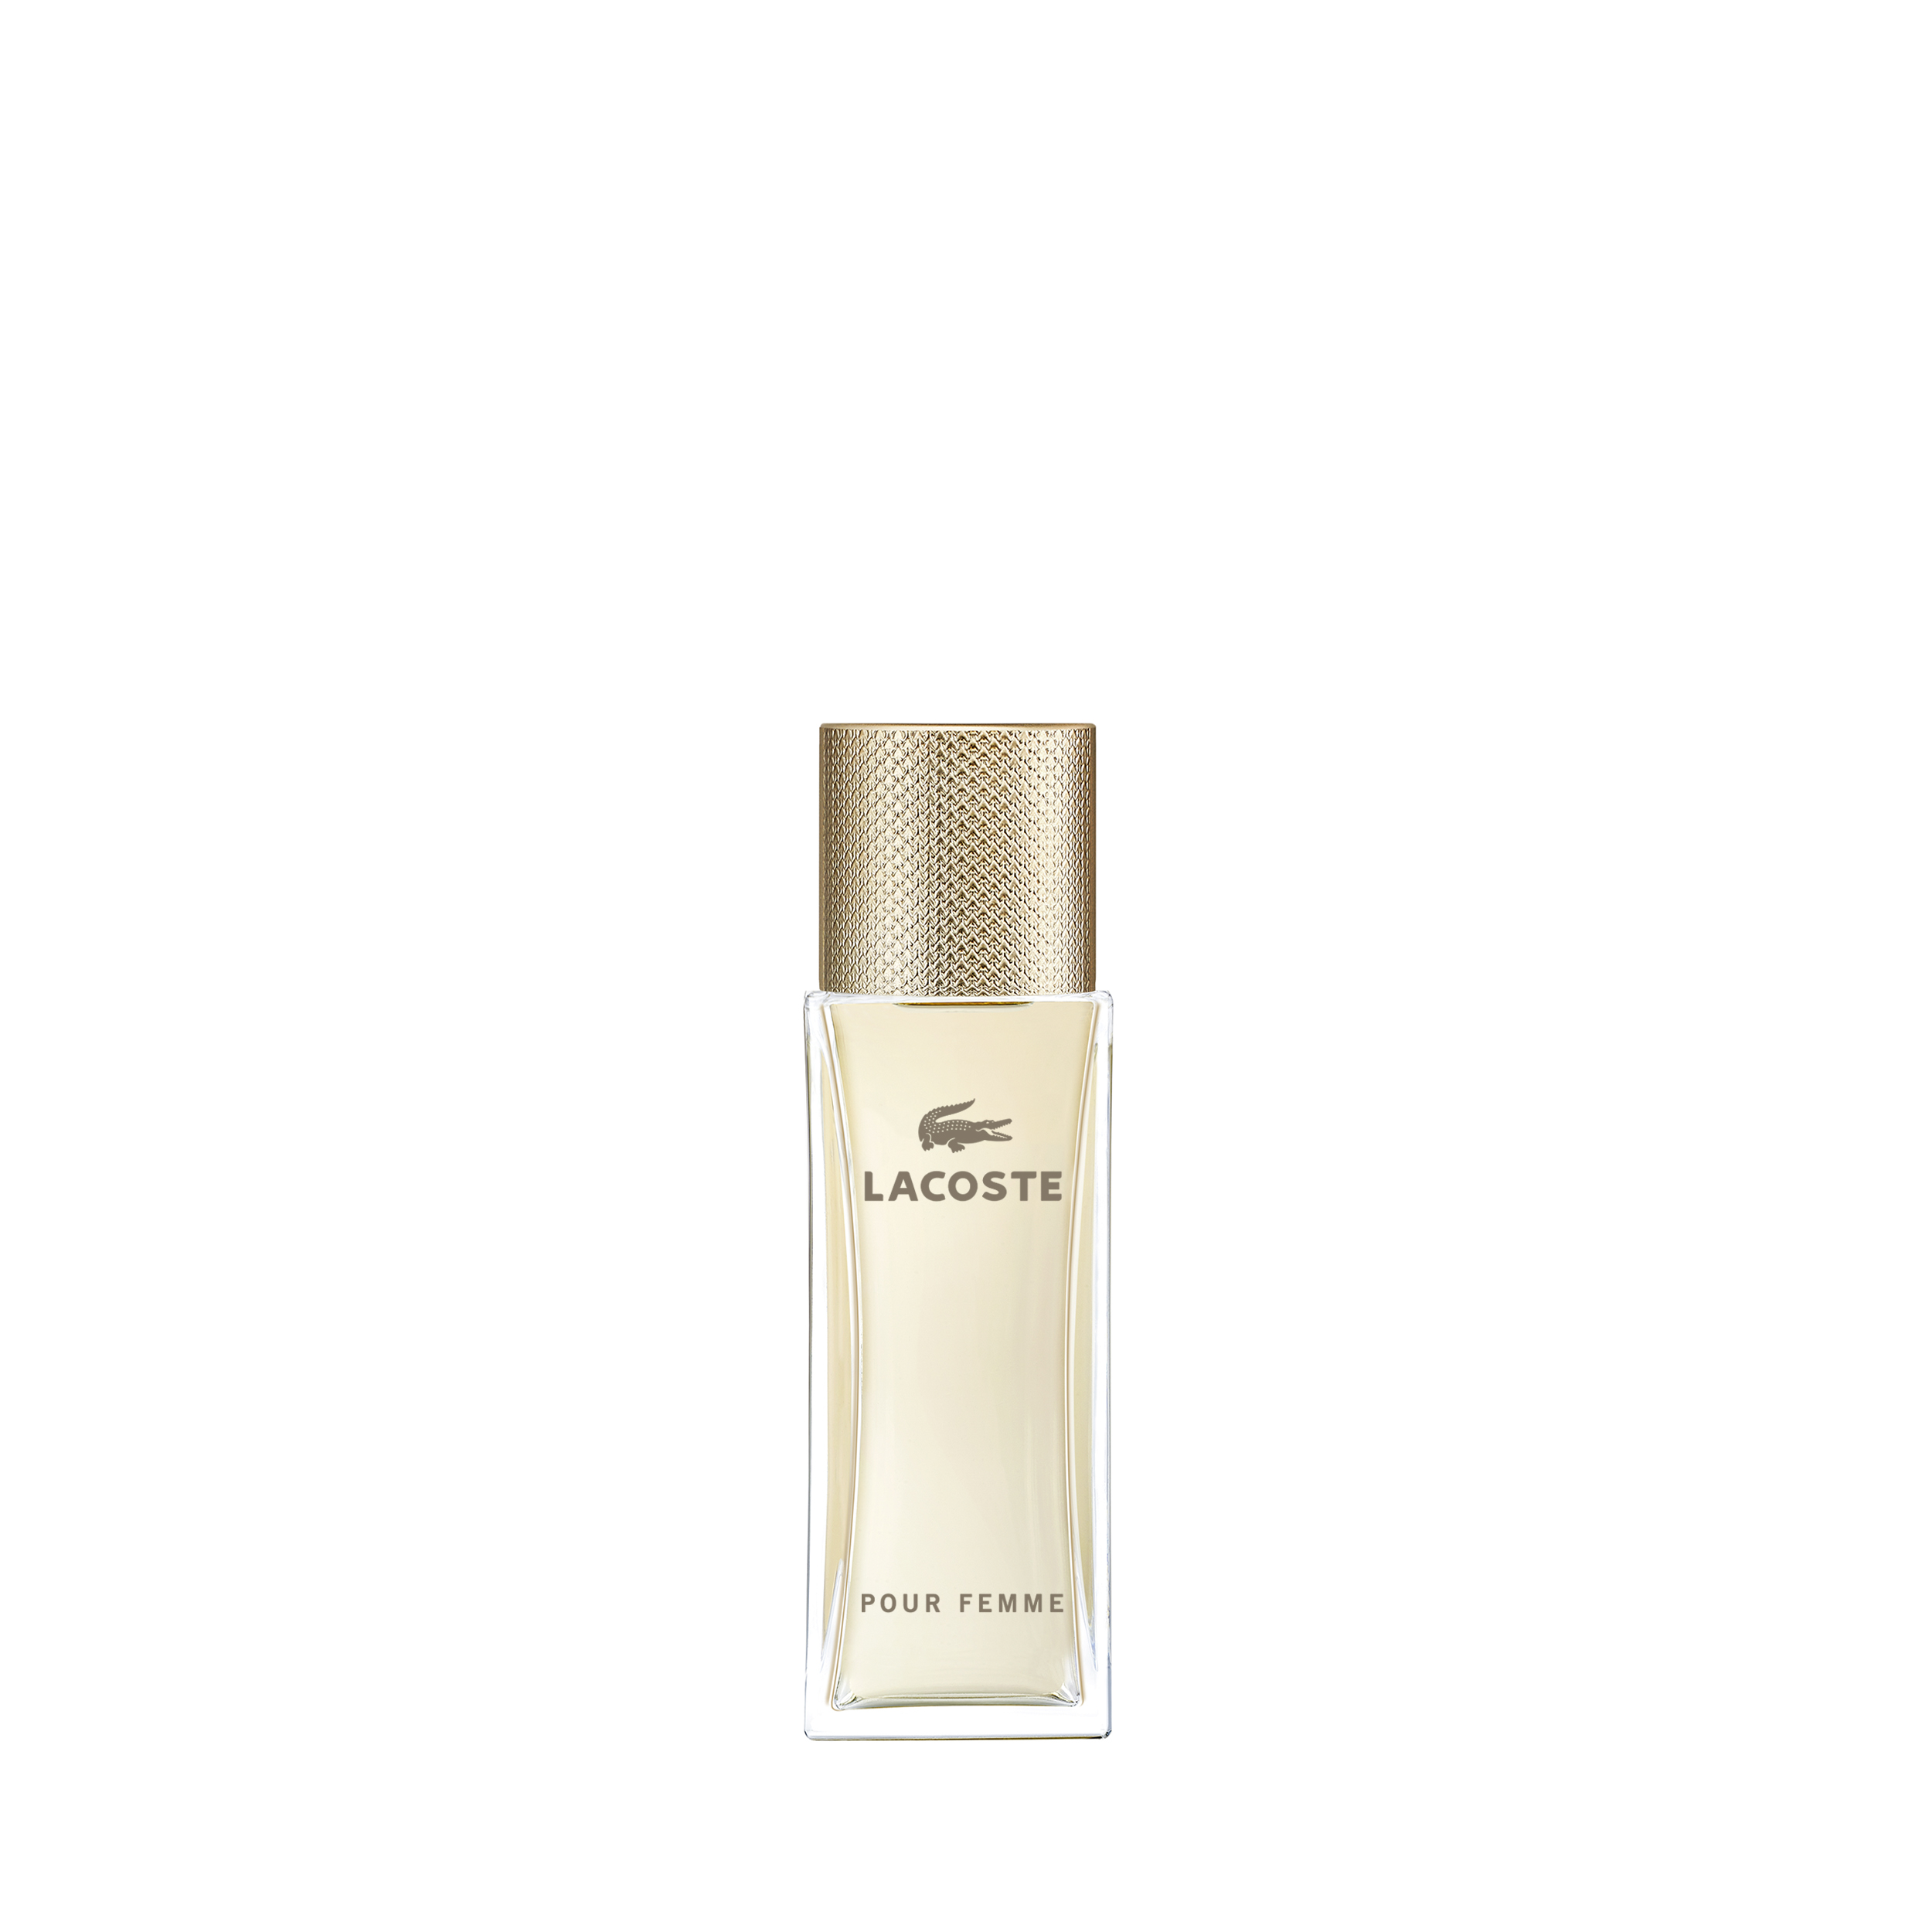 Lacoste POUR FEMME EDP 30ML for Her